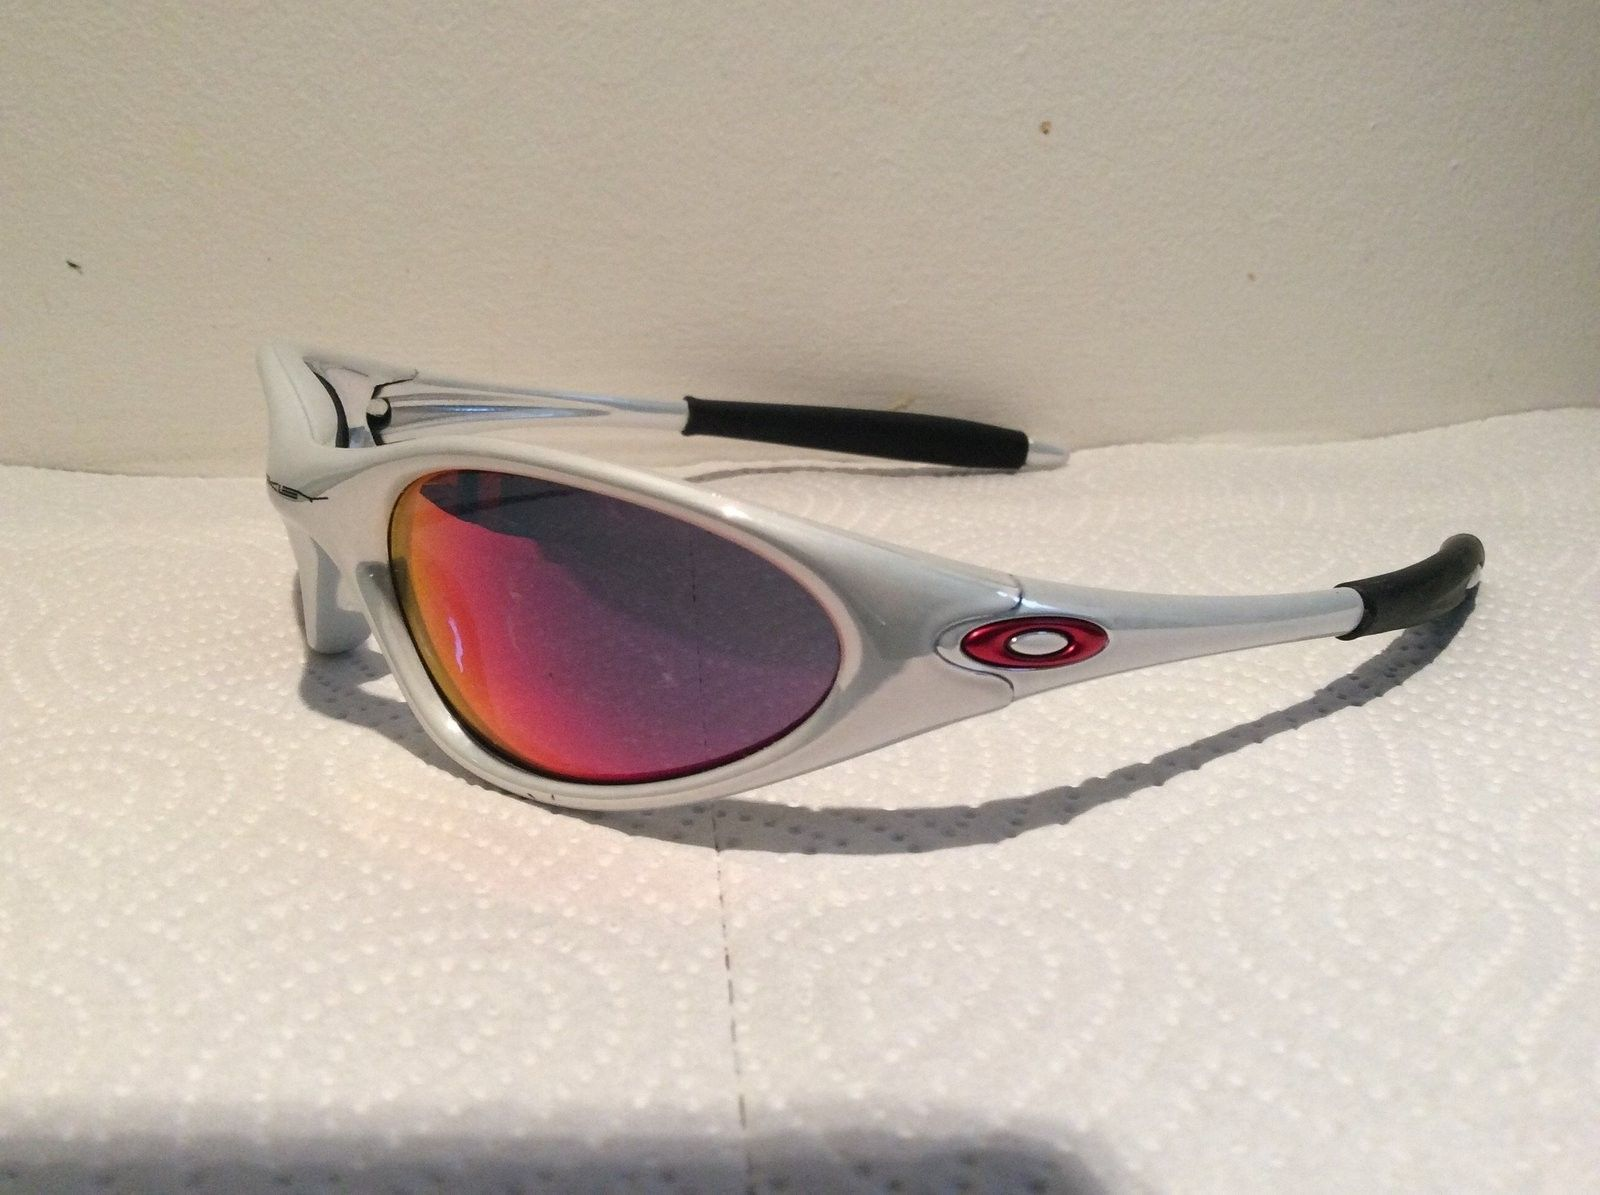 Or trade Minutes: White Chrome, FMJ Red, Complete Pearl - image.jpg